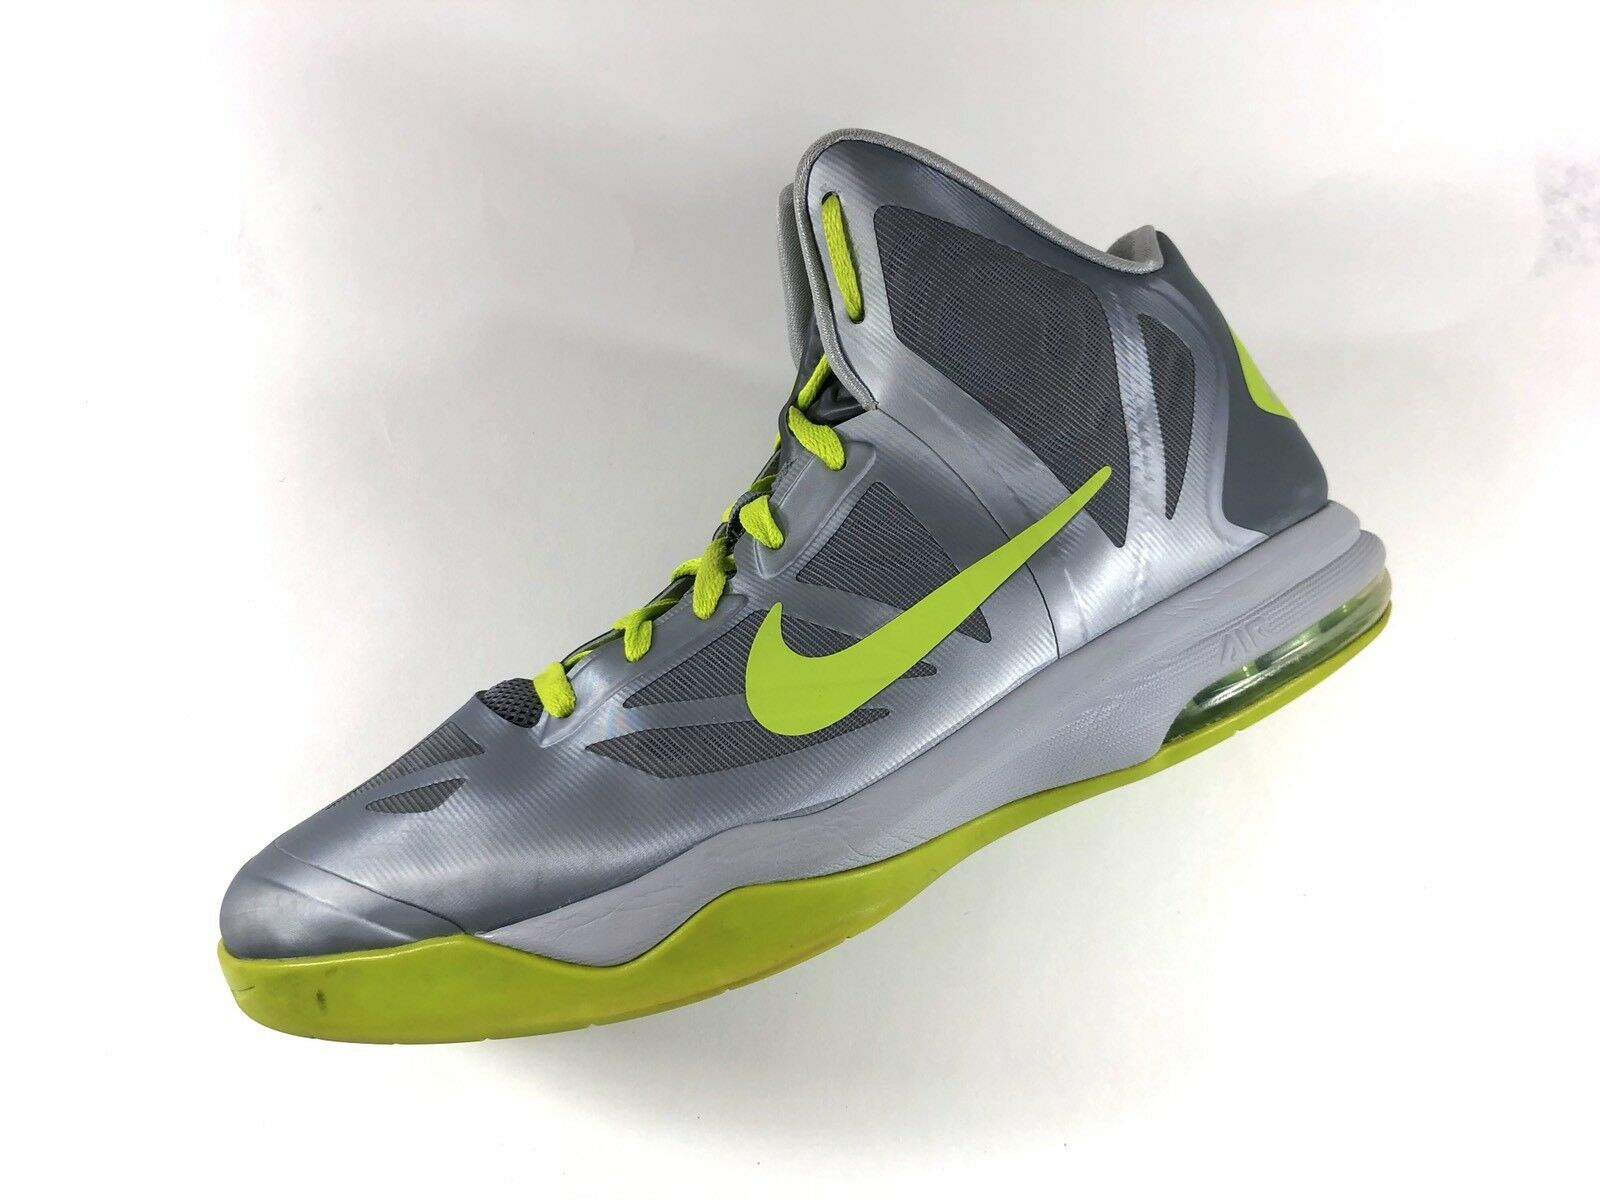 new photos a52bd 18800 NIKE AIR MAX HYPERAGGRESSOR SZ 10.5 Men s Basketball Shoes 524851-009 ...